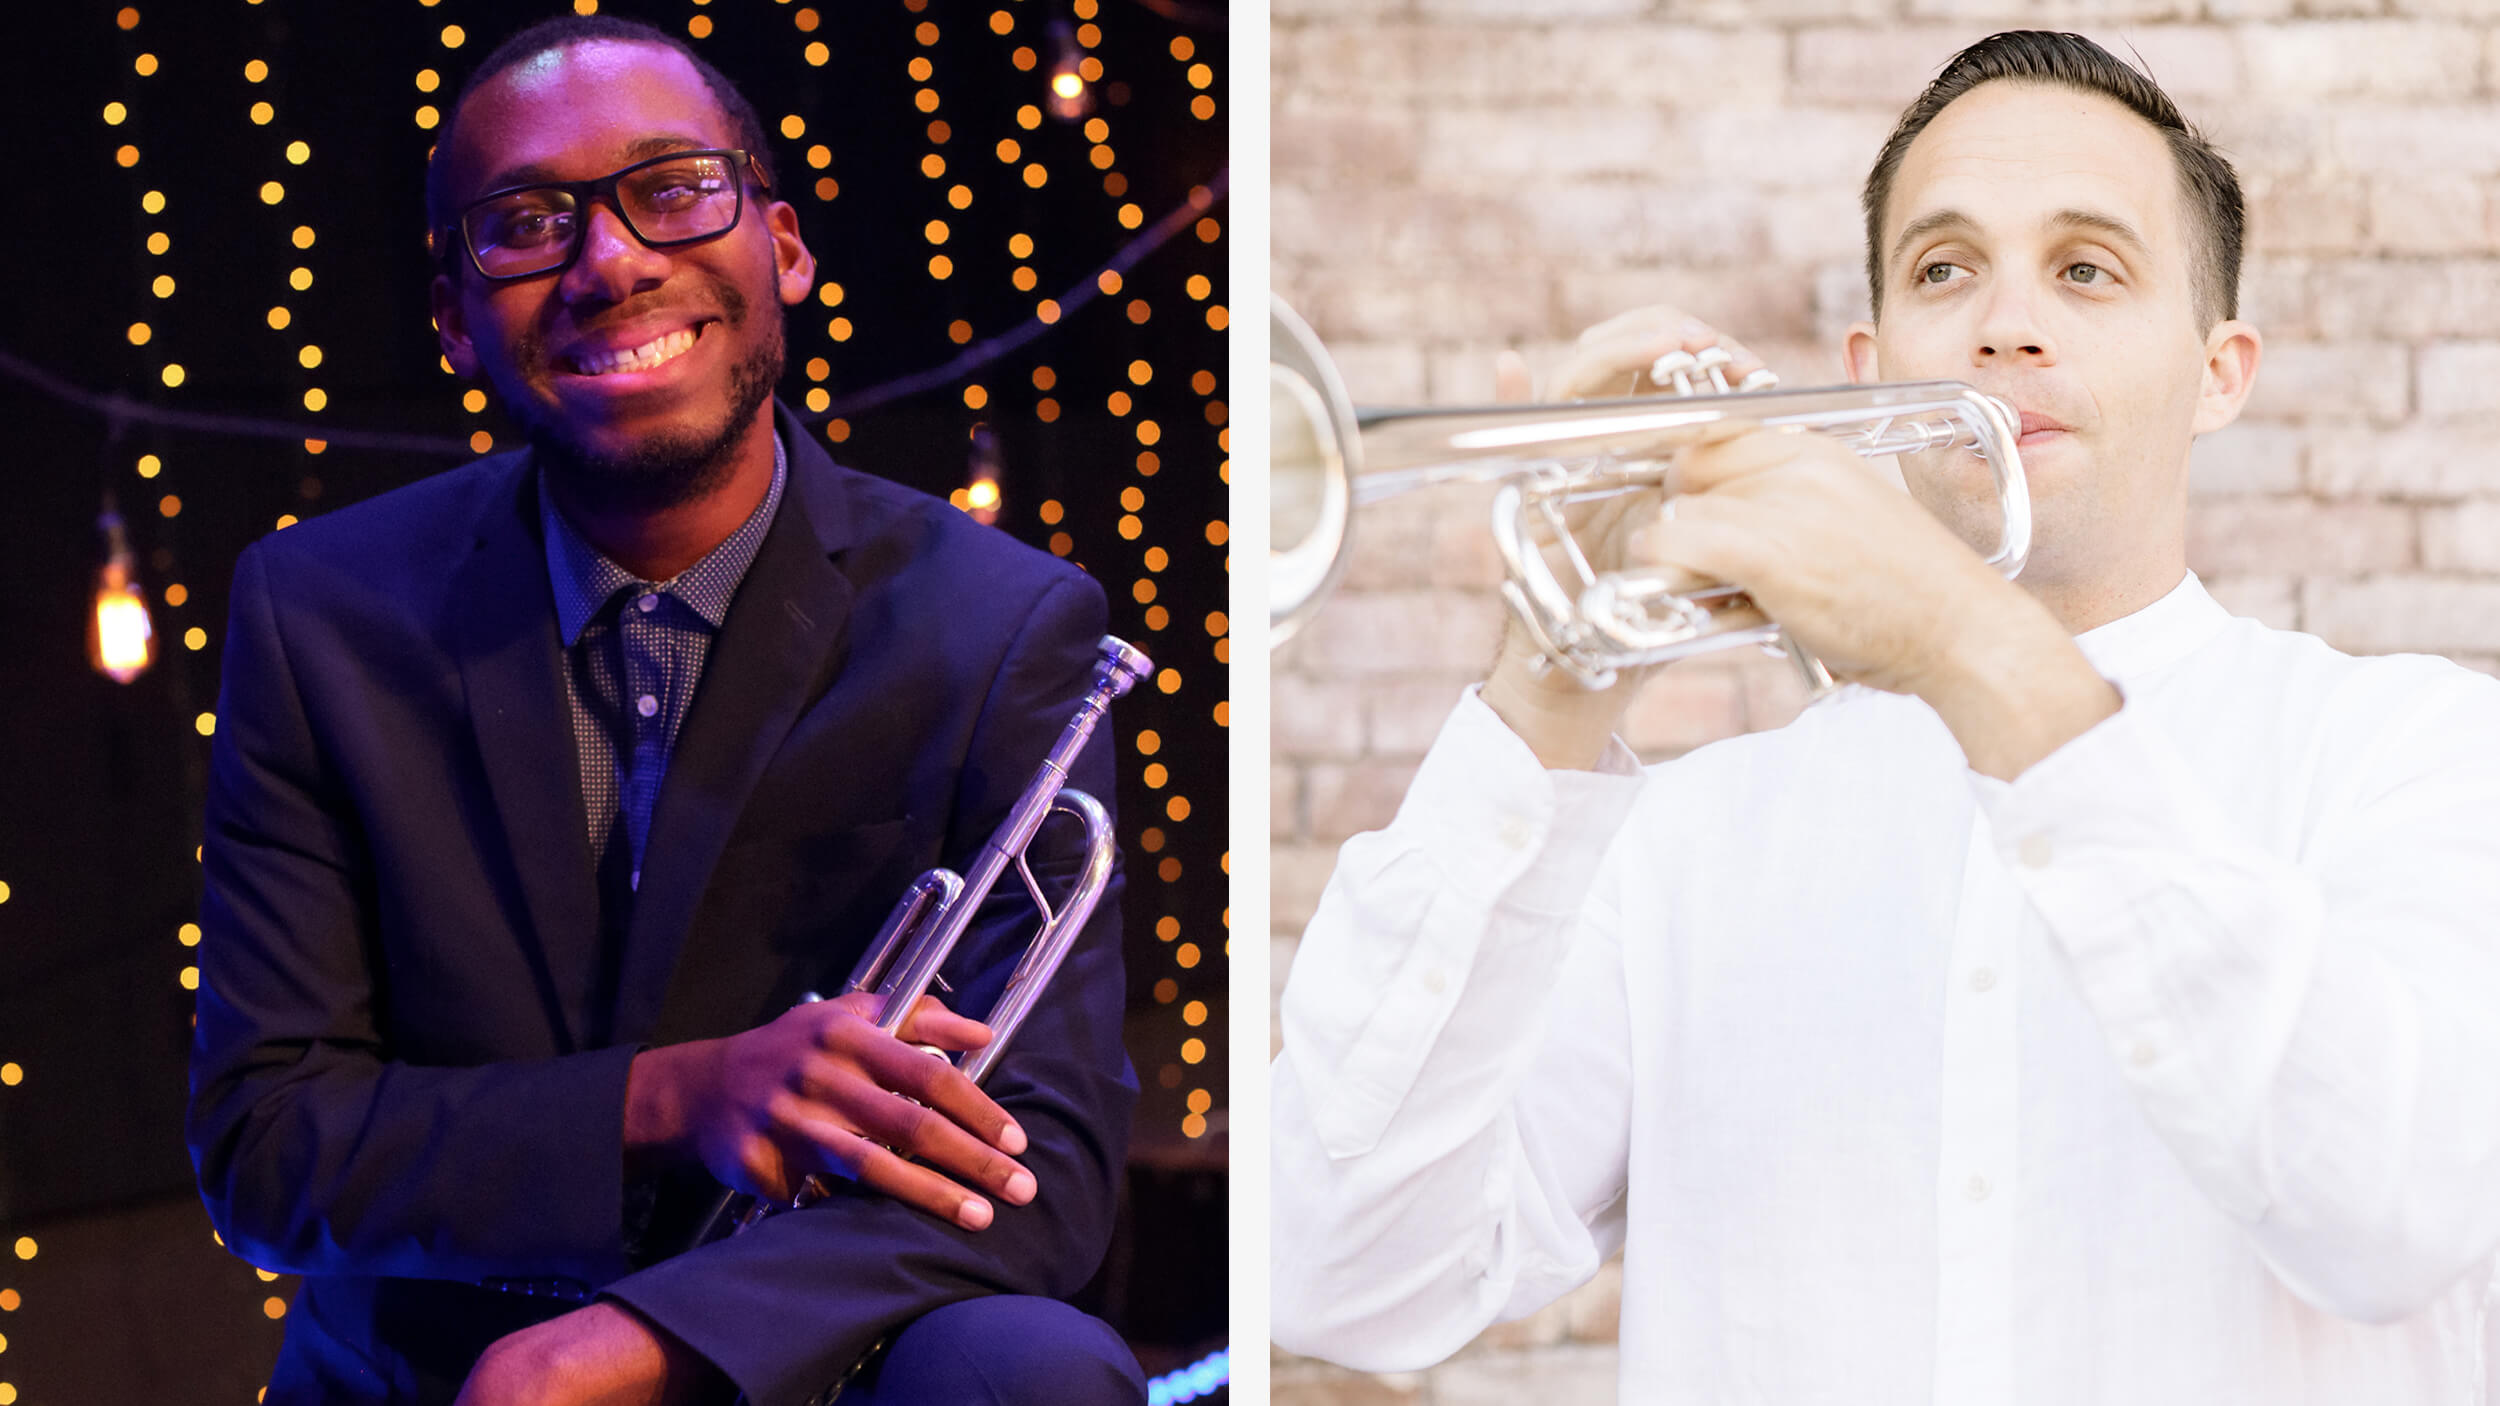 Performers Showcase: The tale of two trumpets